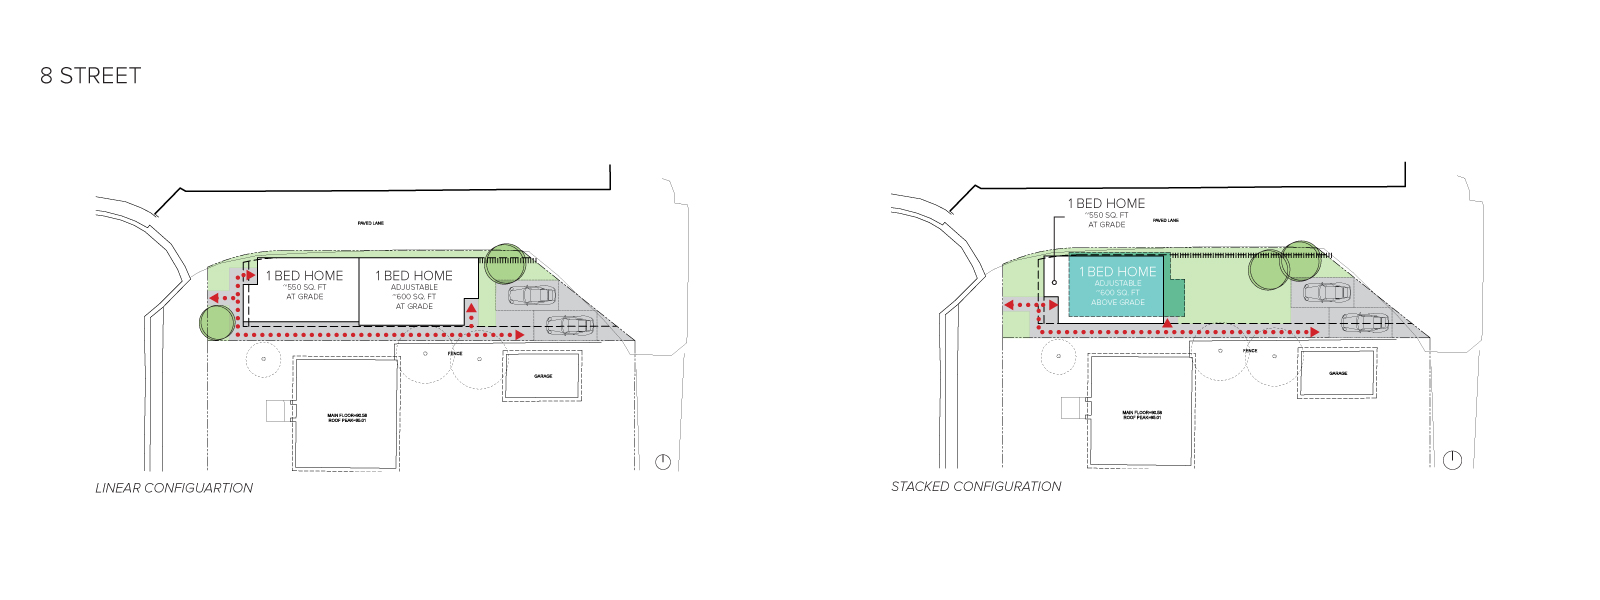 An image of the home configurations on 8 Street.